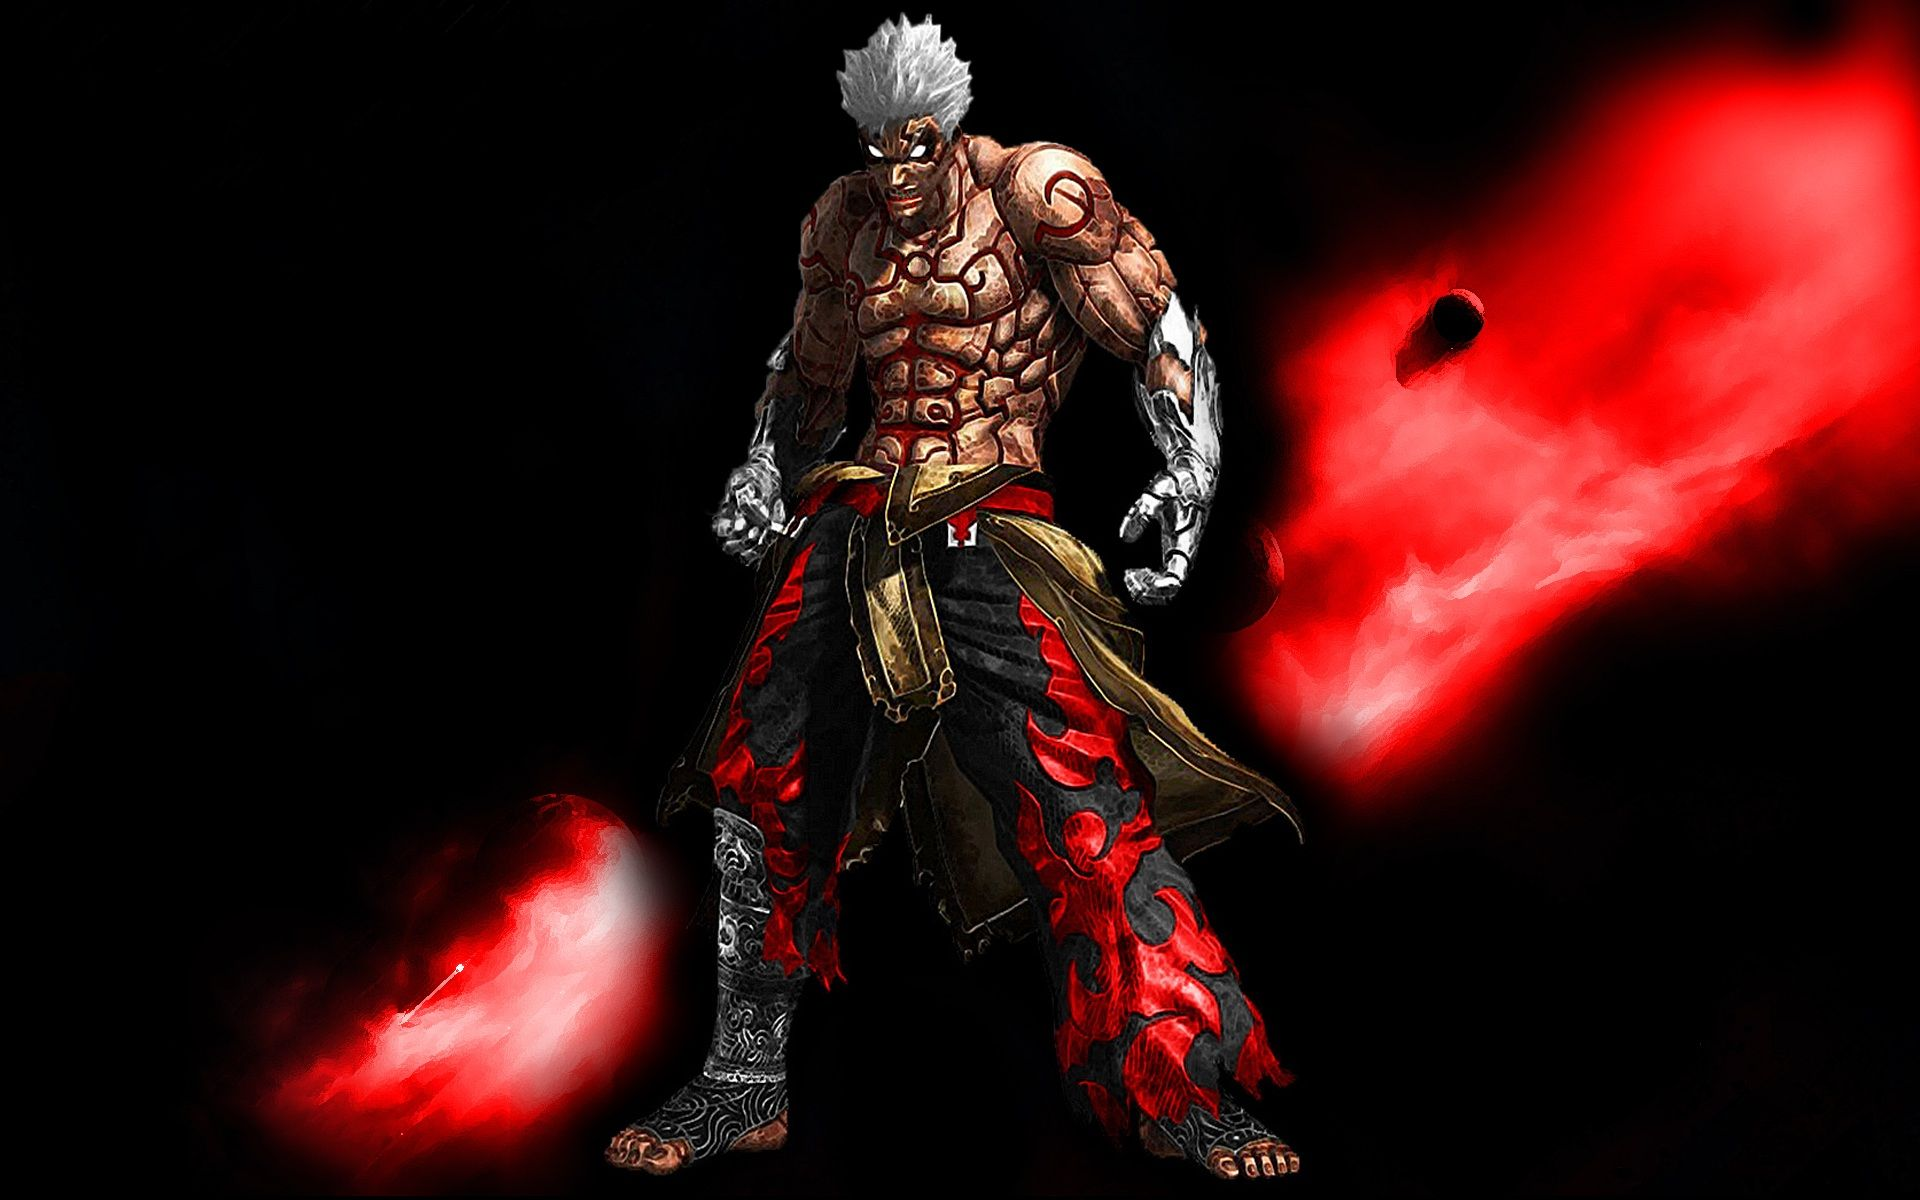 Free asuras wrath wallpapers hd wallpapers pinterest wallpaper free asuras wrath wallpapers voltagebd Images